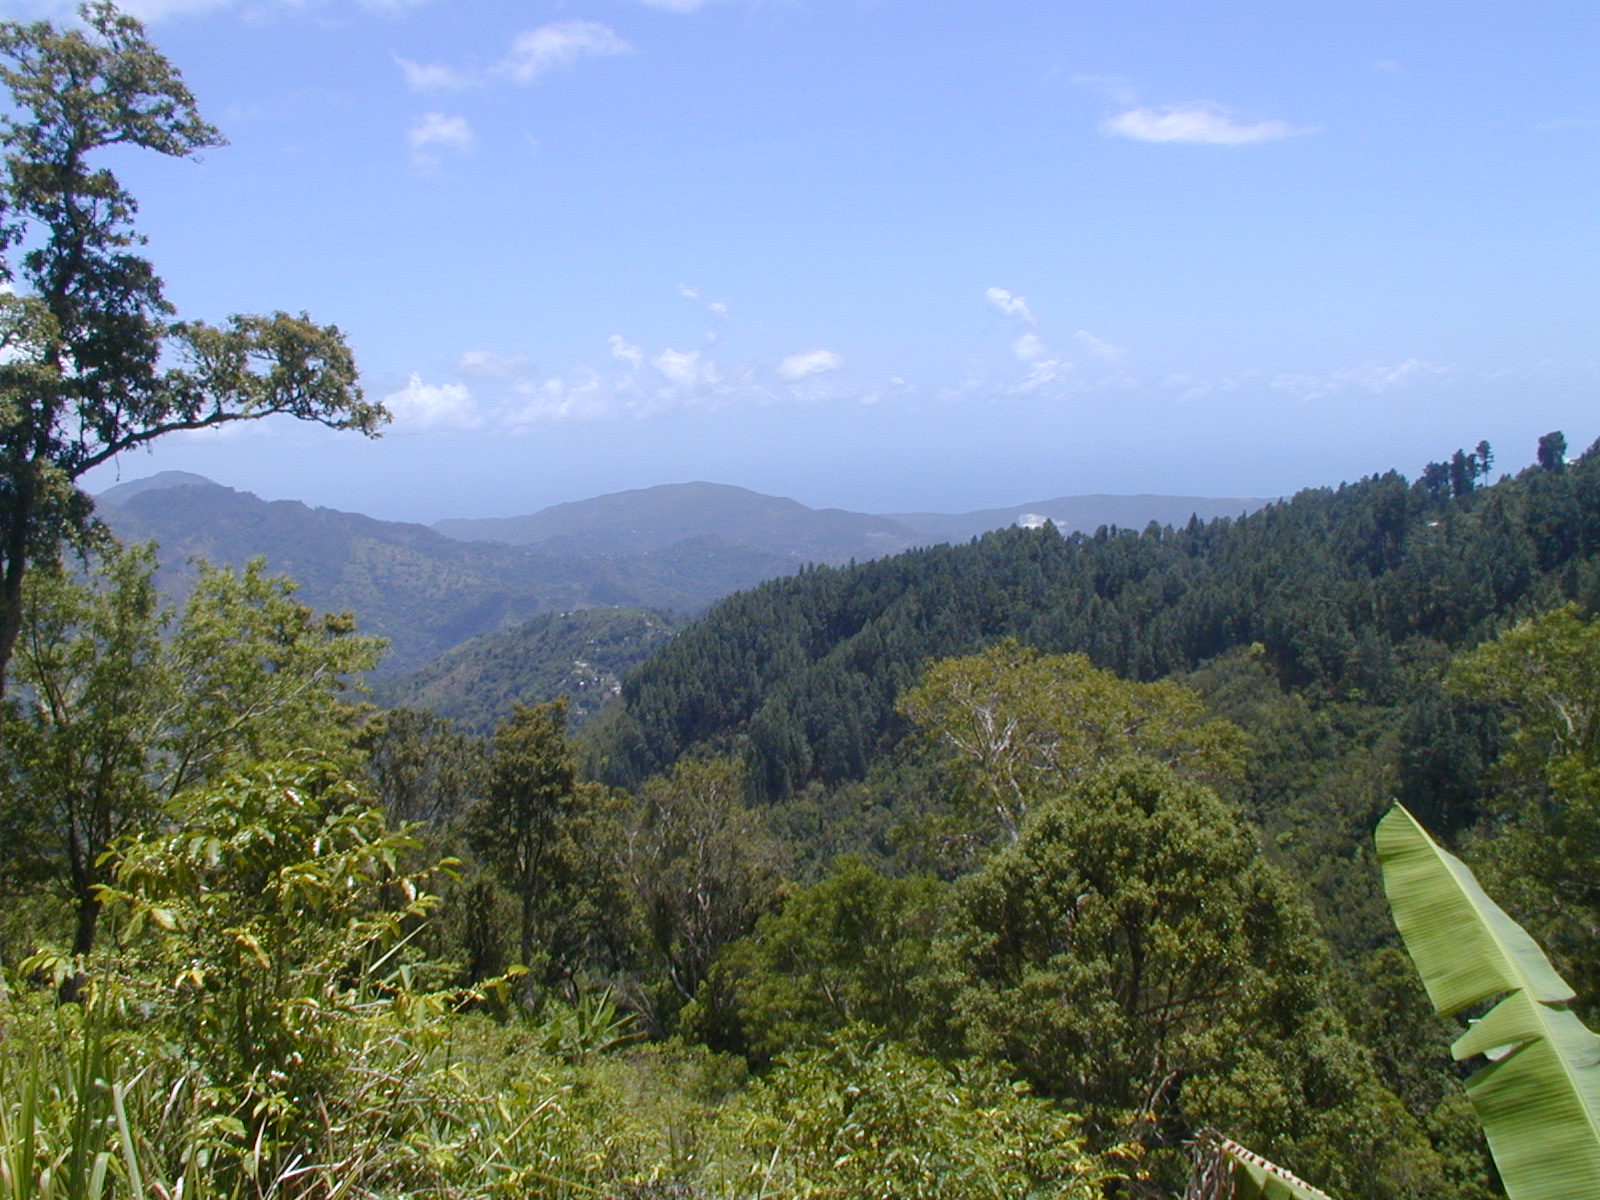 View over the lush green tops of the Blue Mountains in Jamaica.